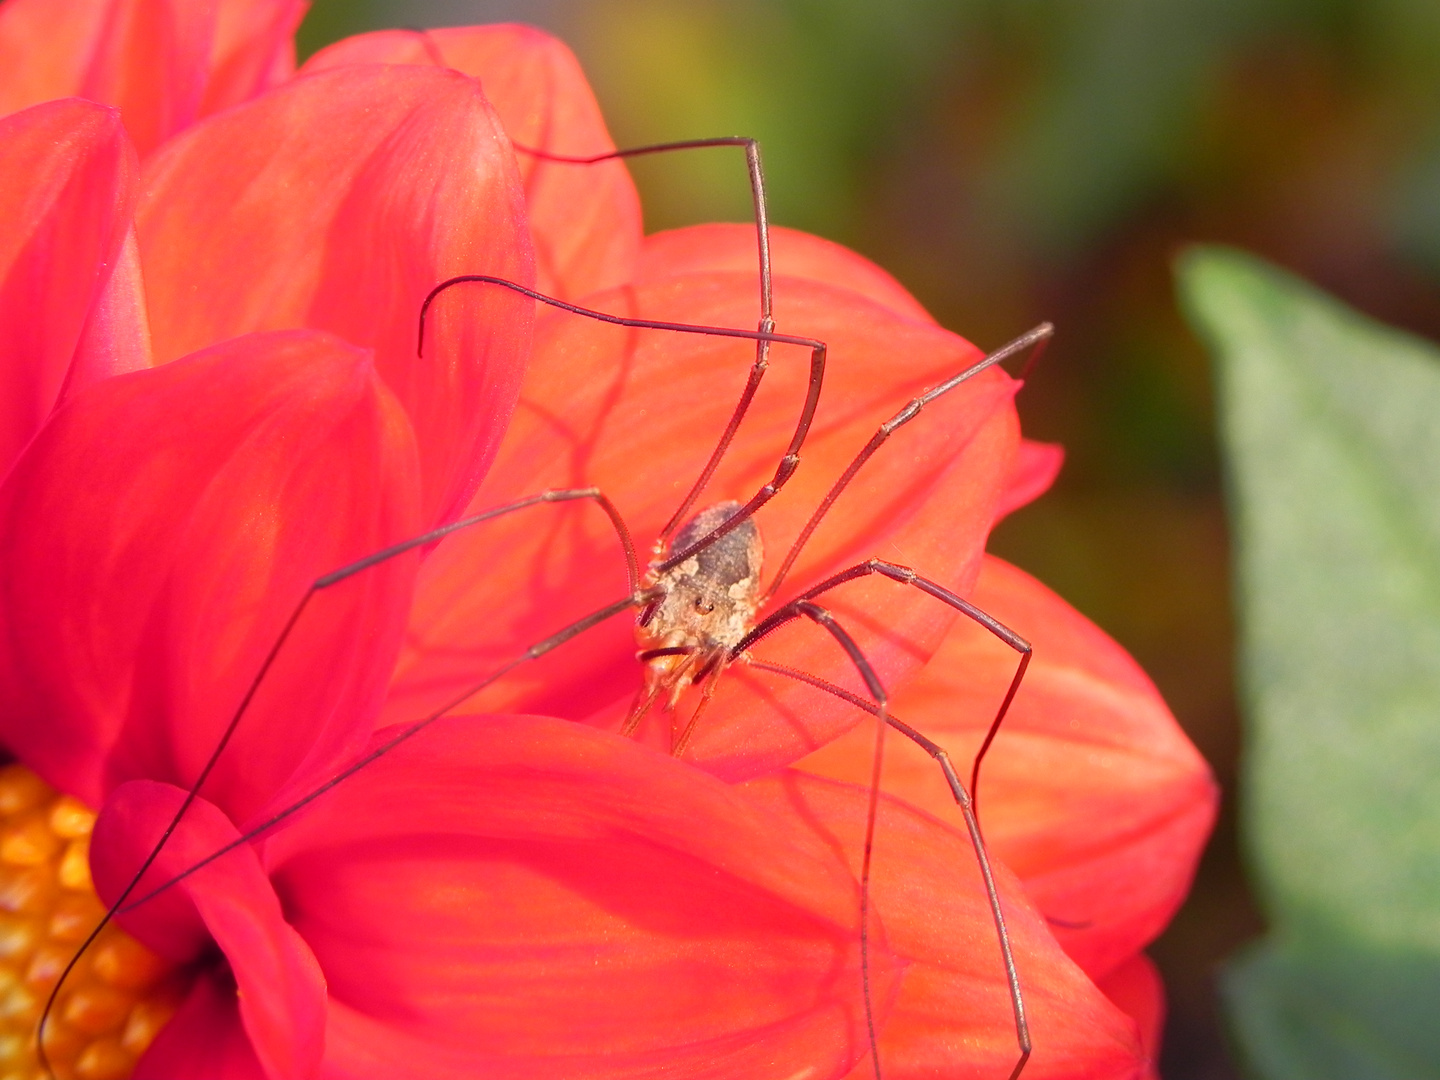 Spinne in red